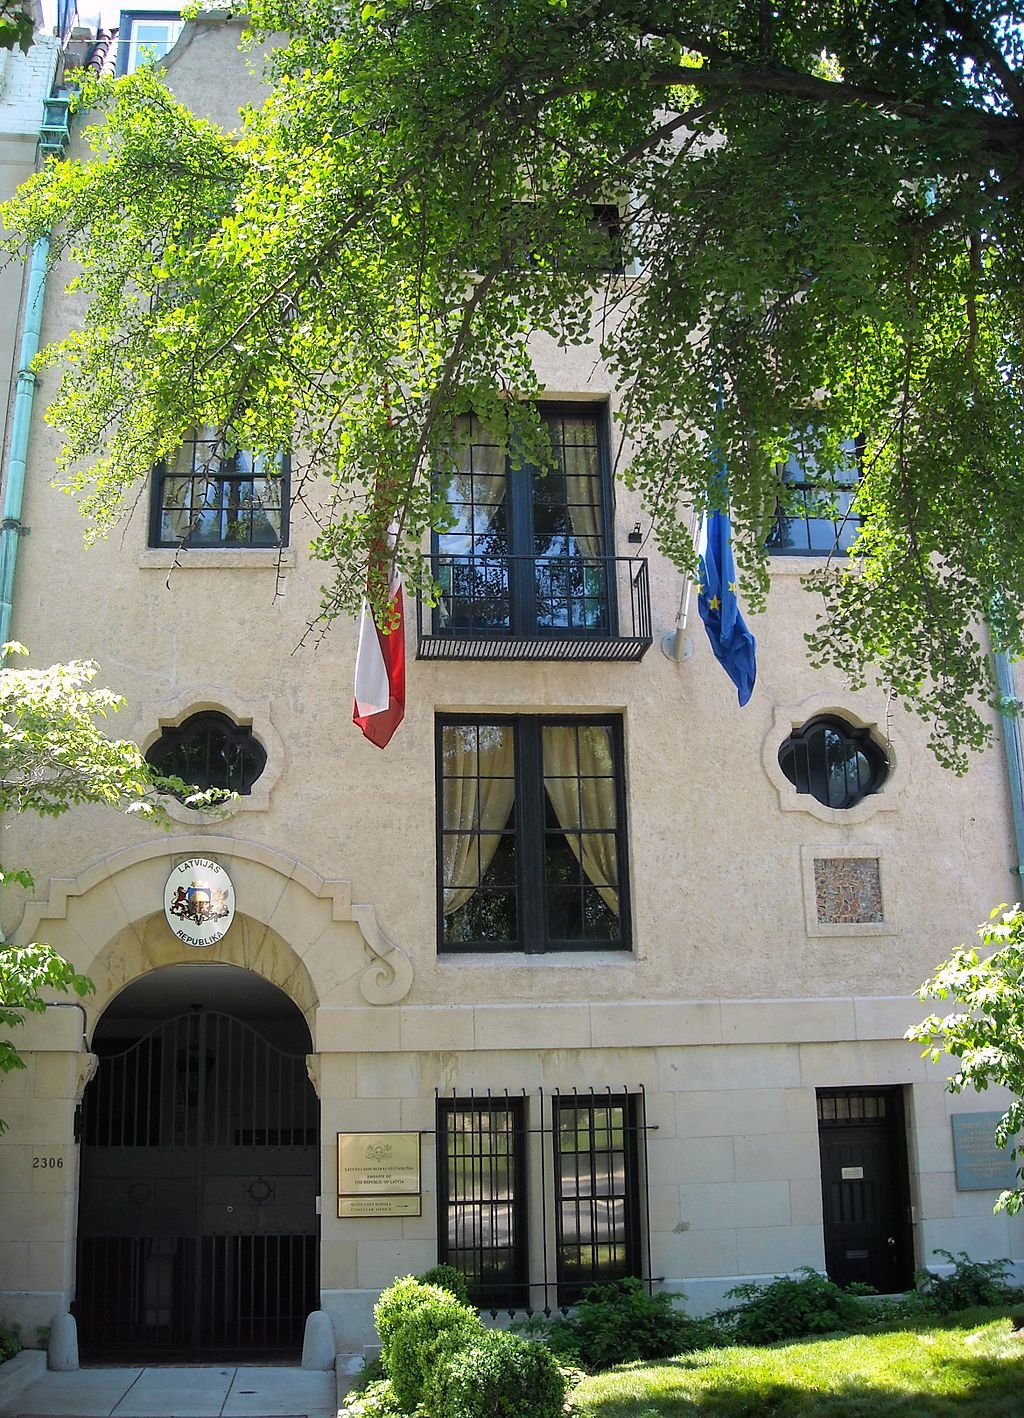 The Latvian chancery is a fine example of Spanish Colonial Revival architecture on Embassy Row, noted by its rounded features and masonry construction.